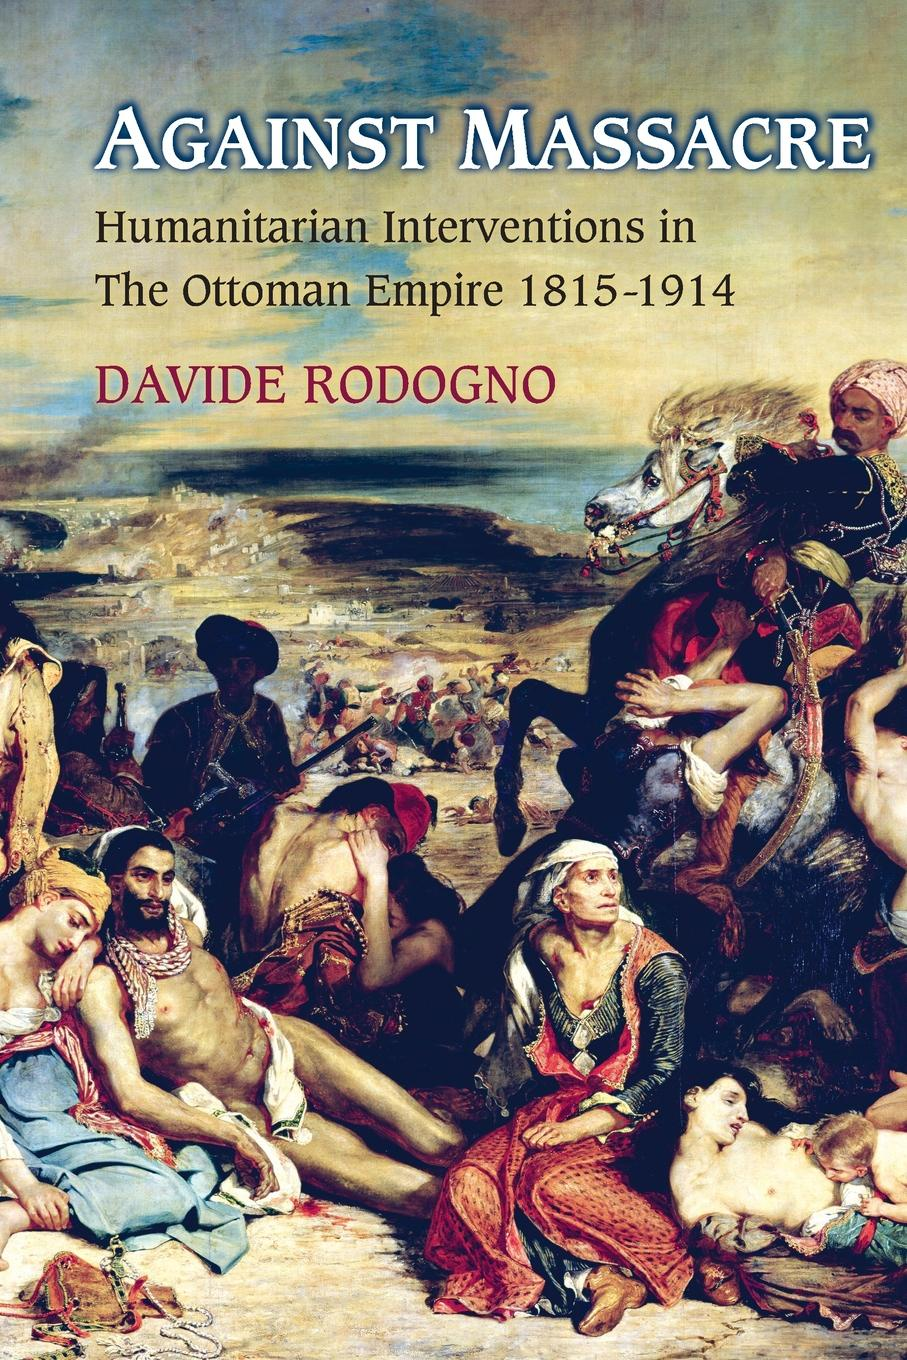 лучшая цена Davide Rodogno Against Massacre. Humanitarian Interventions in the Ottoman Empire, 1815-1914